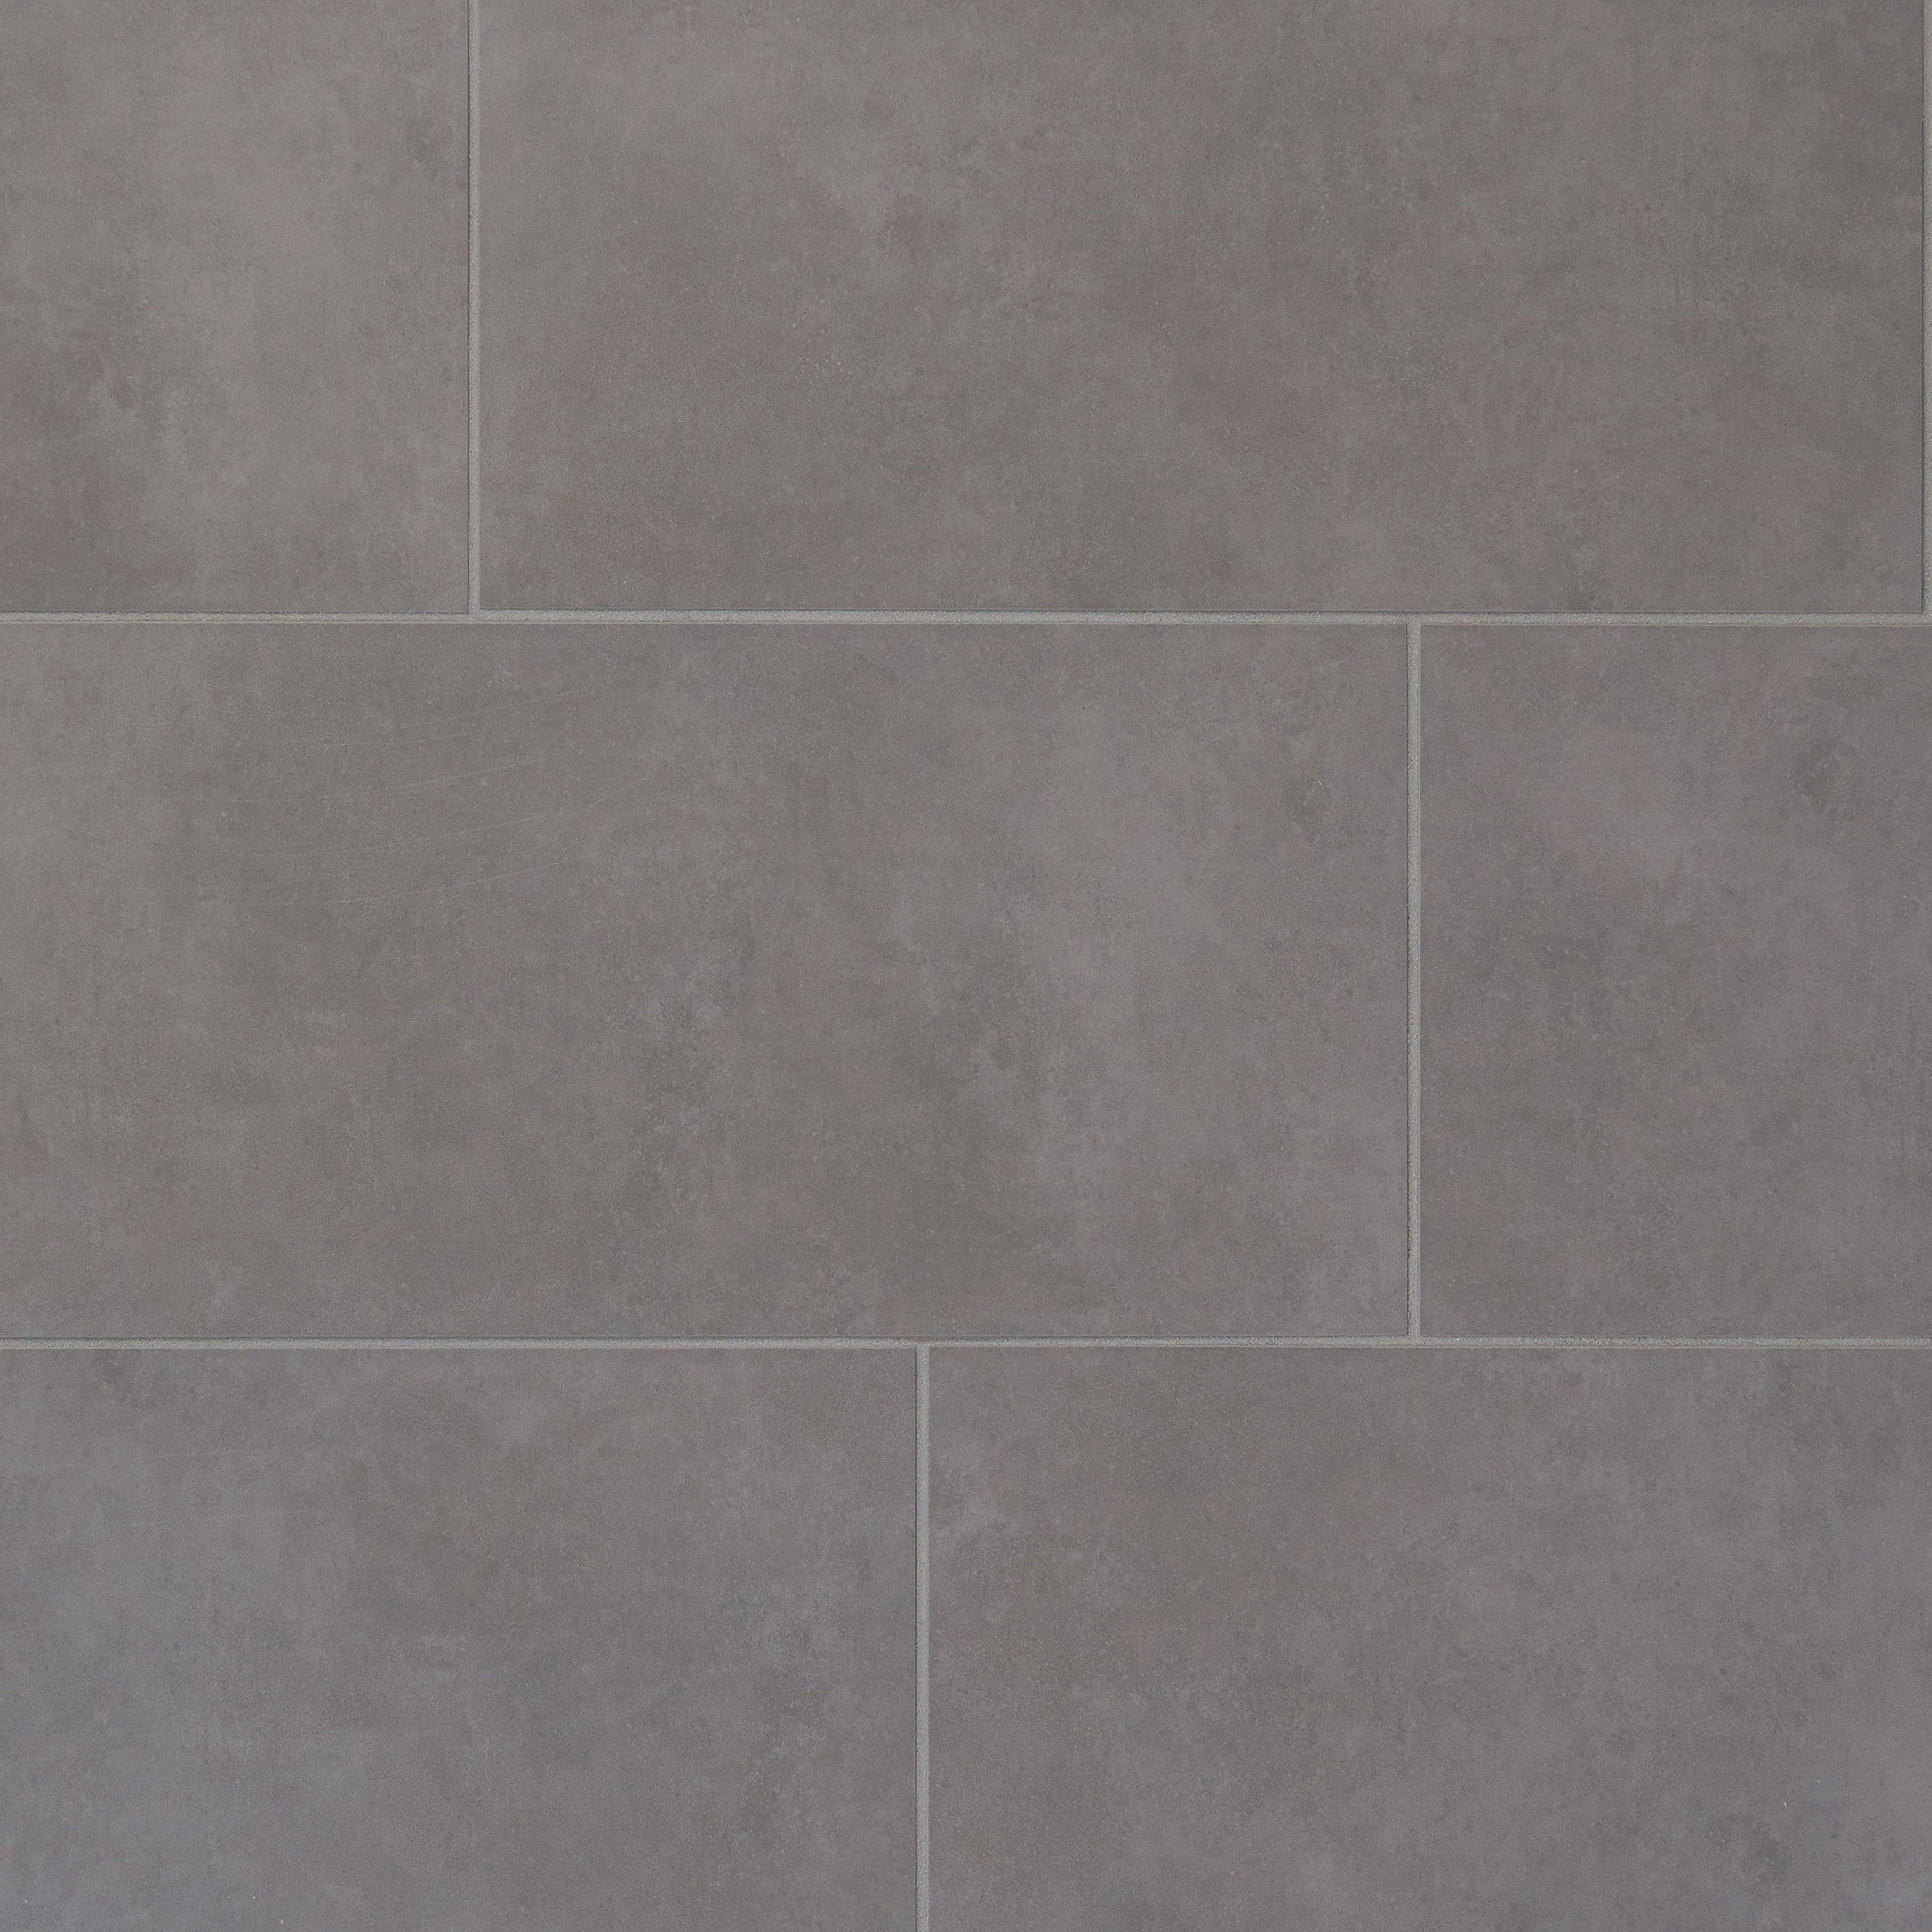 Uptown Antracite Porcelain Tile 12 X 24 912400367